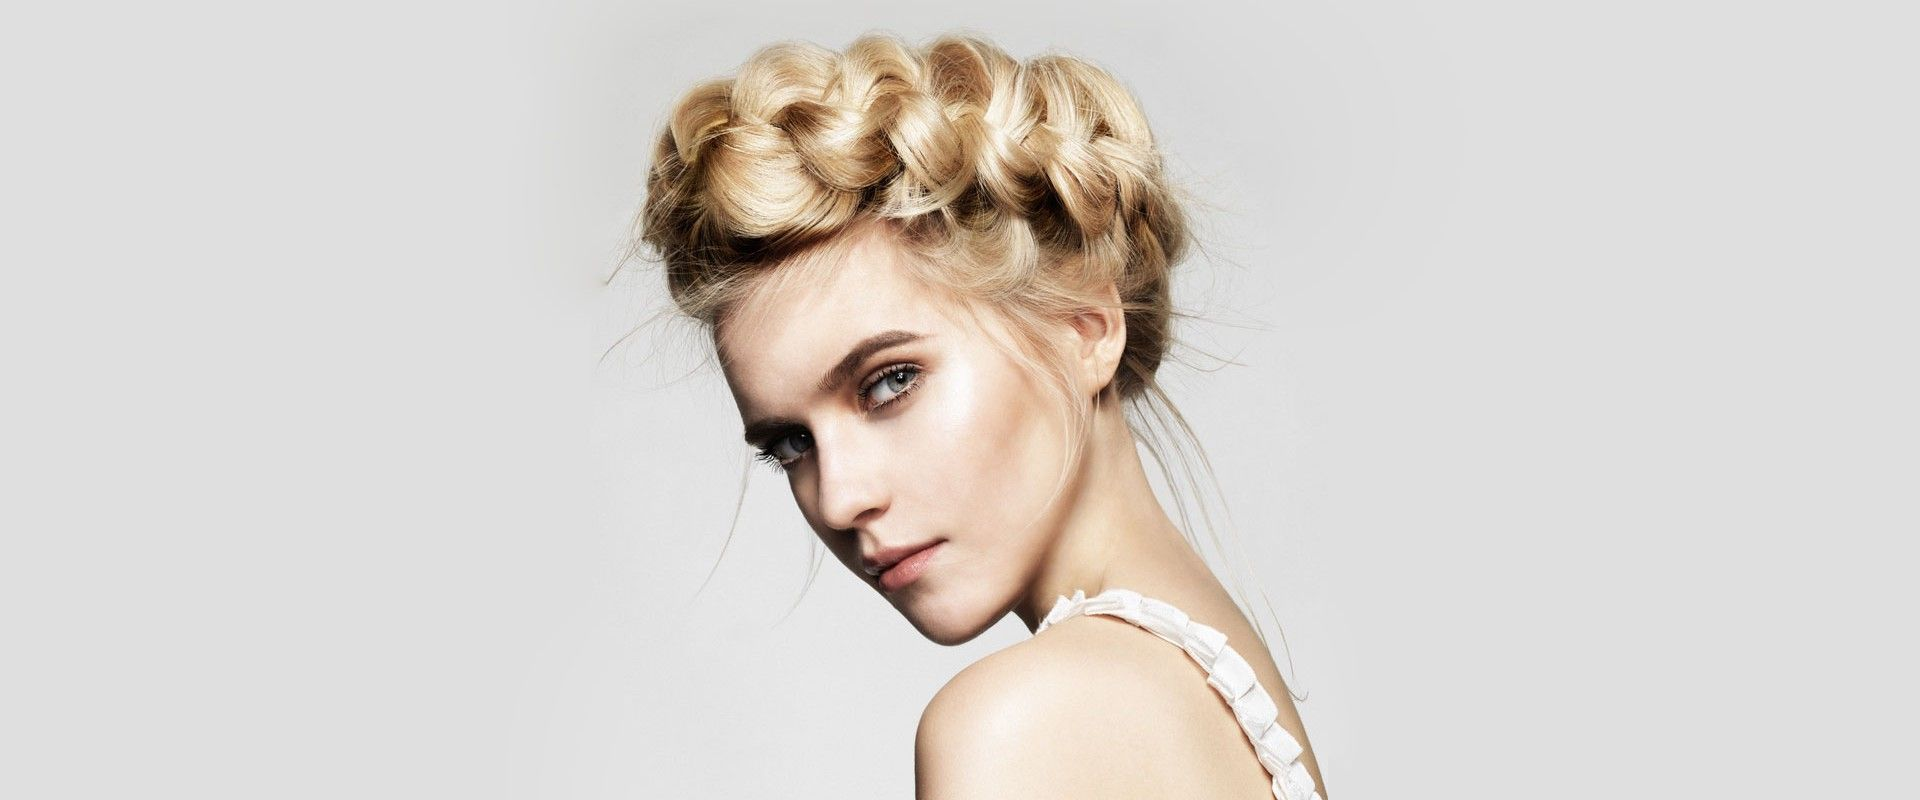 Pin by juno on beautiful hair pinterest